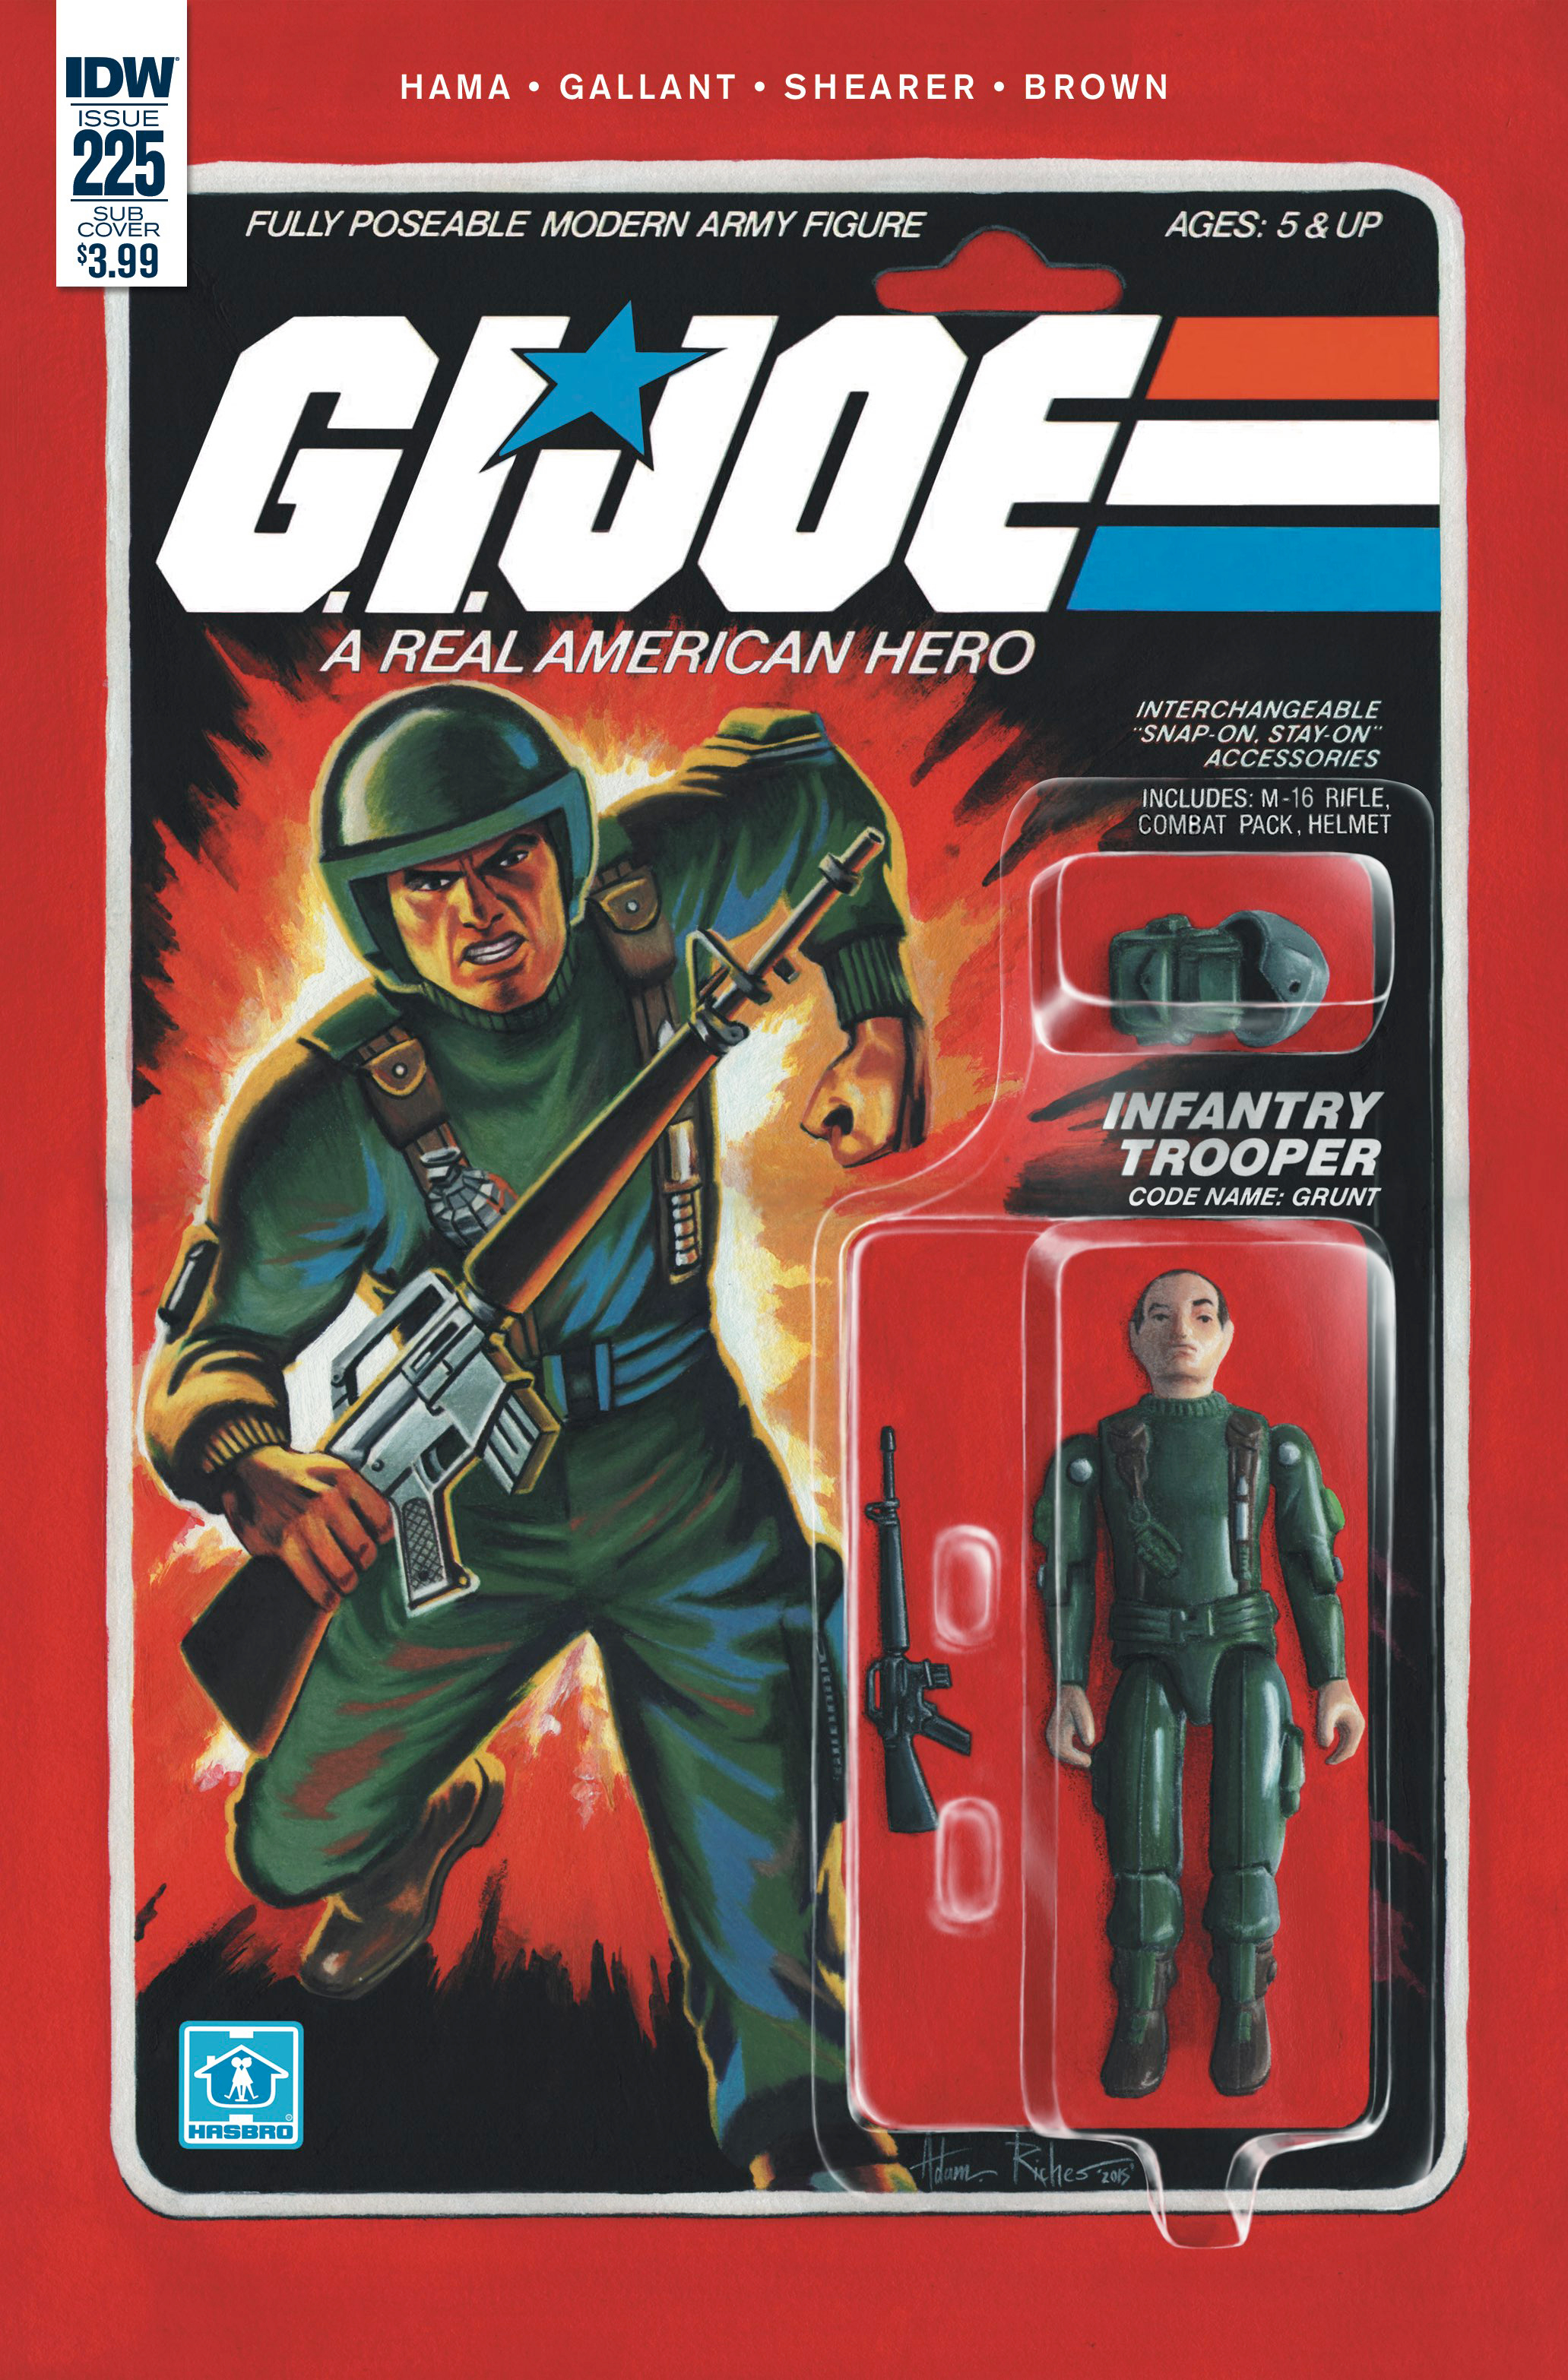 GI JOE A REAL AMERICAN HERO #225 SUBSCRIPTION VAR